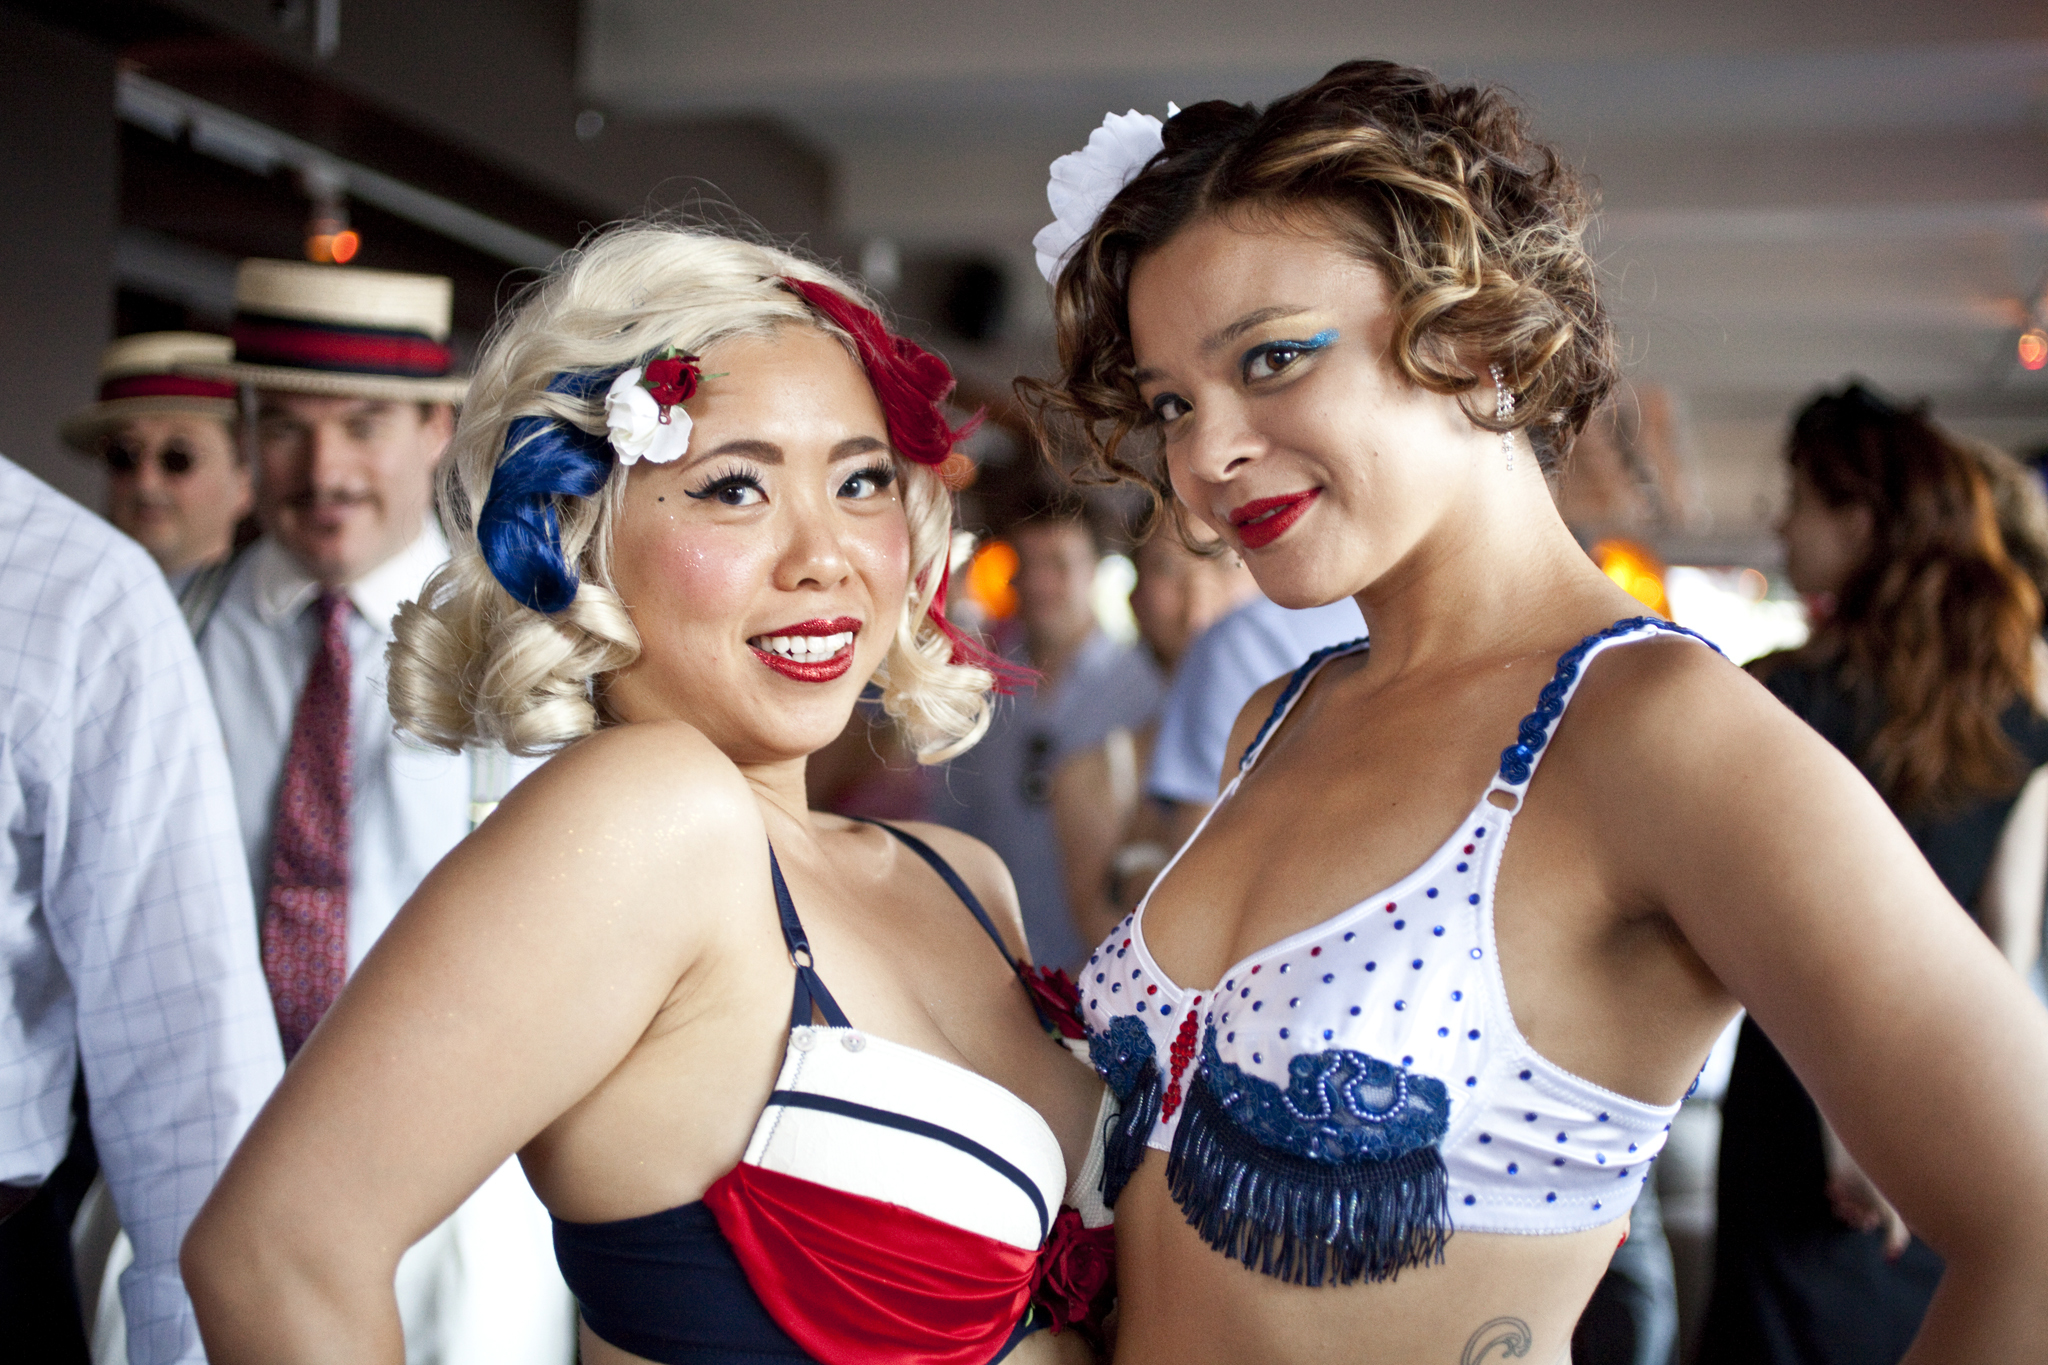 Live photos: The Liberty Belle Spectacular